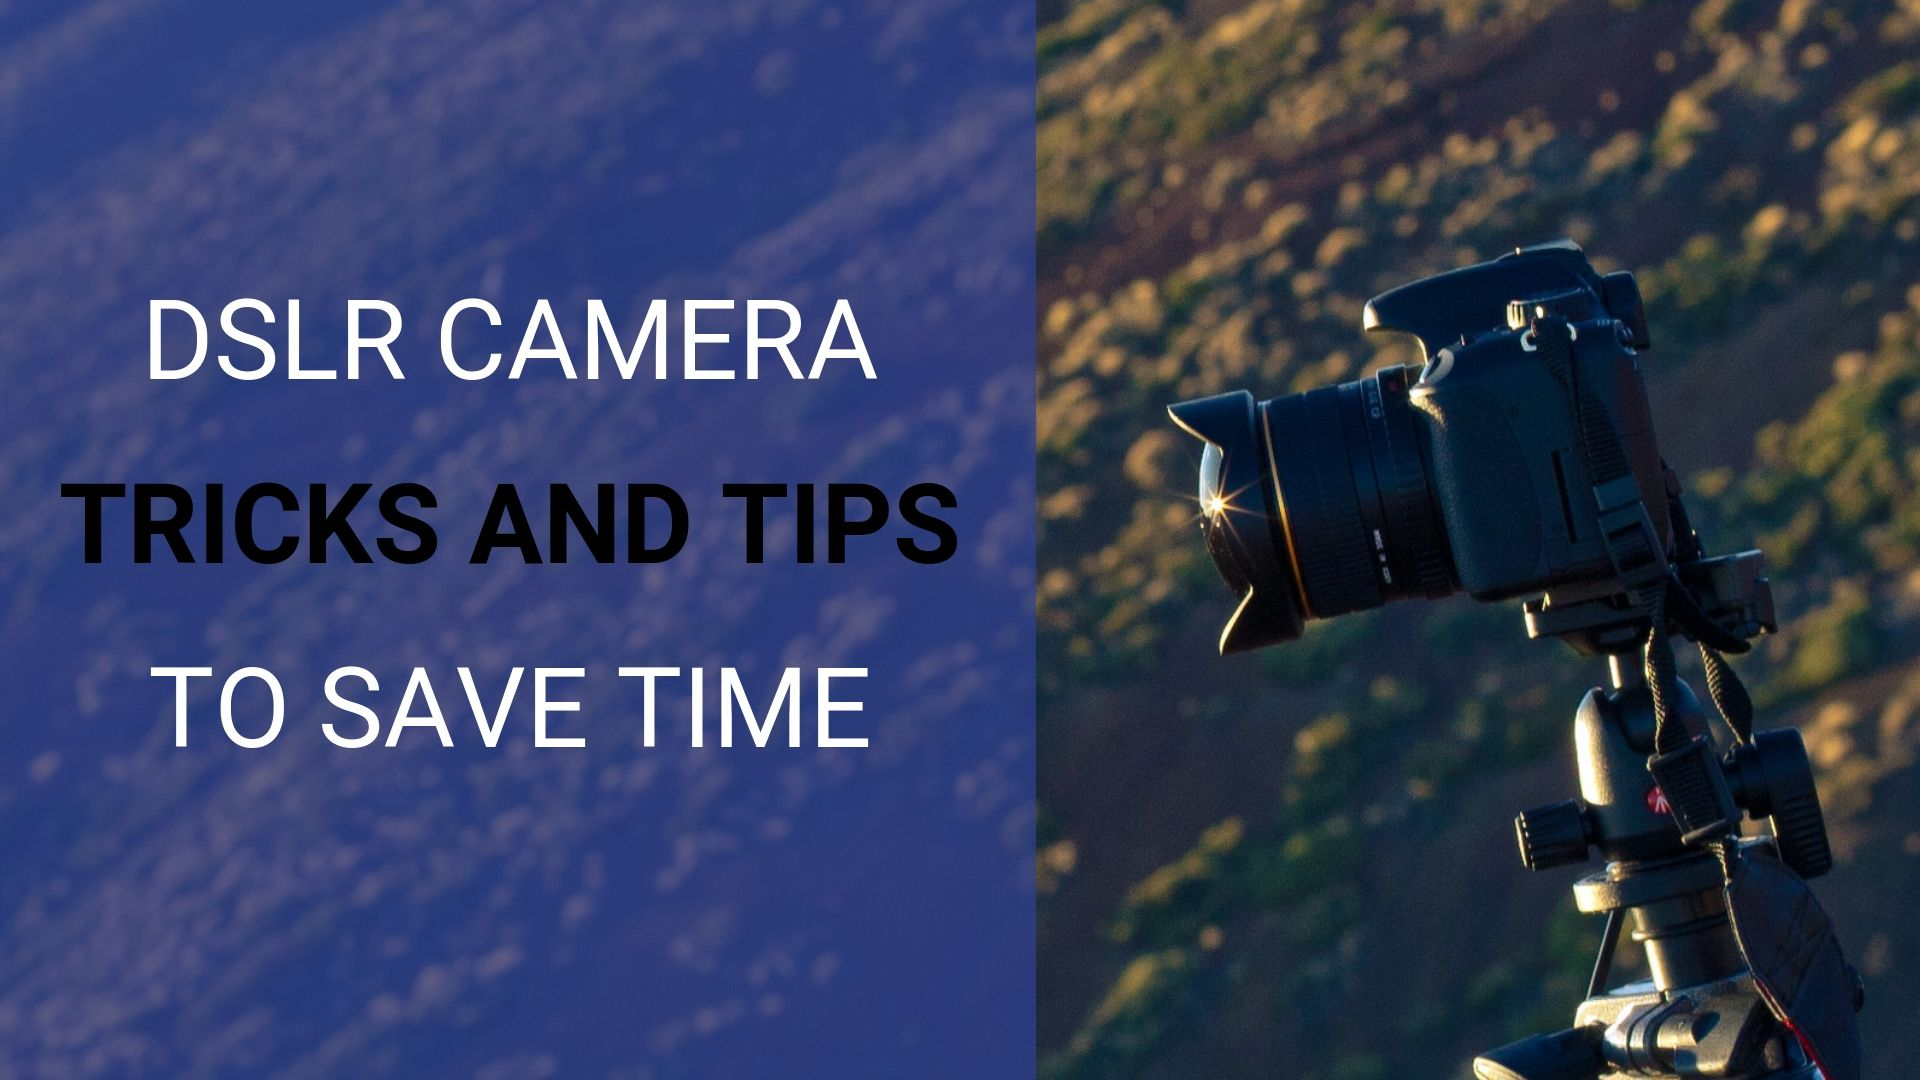 DSLR camera tricks and shortcuts